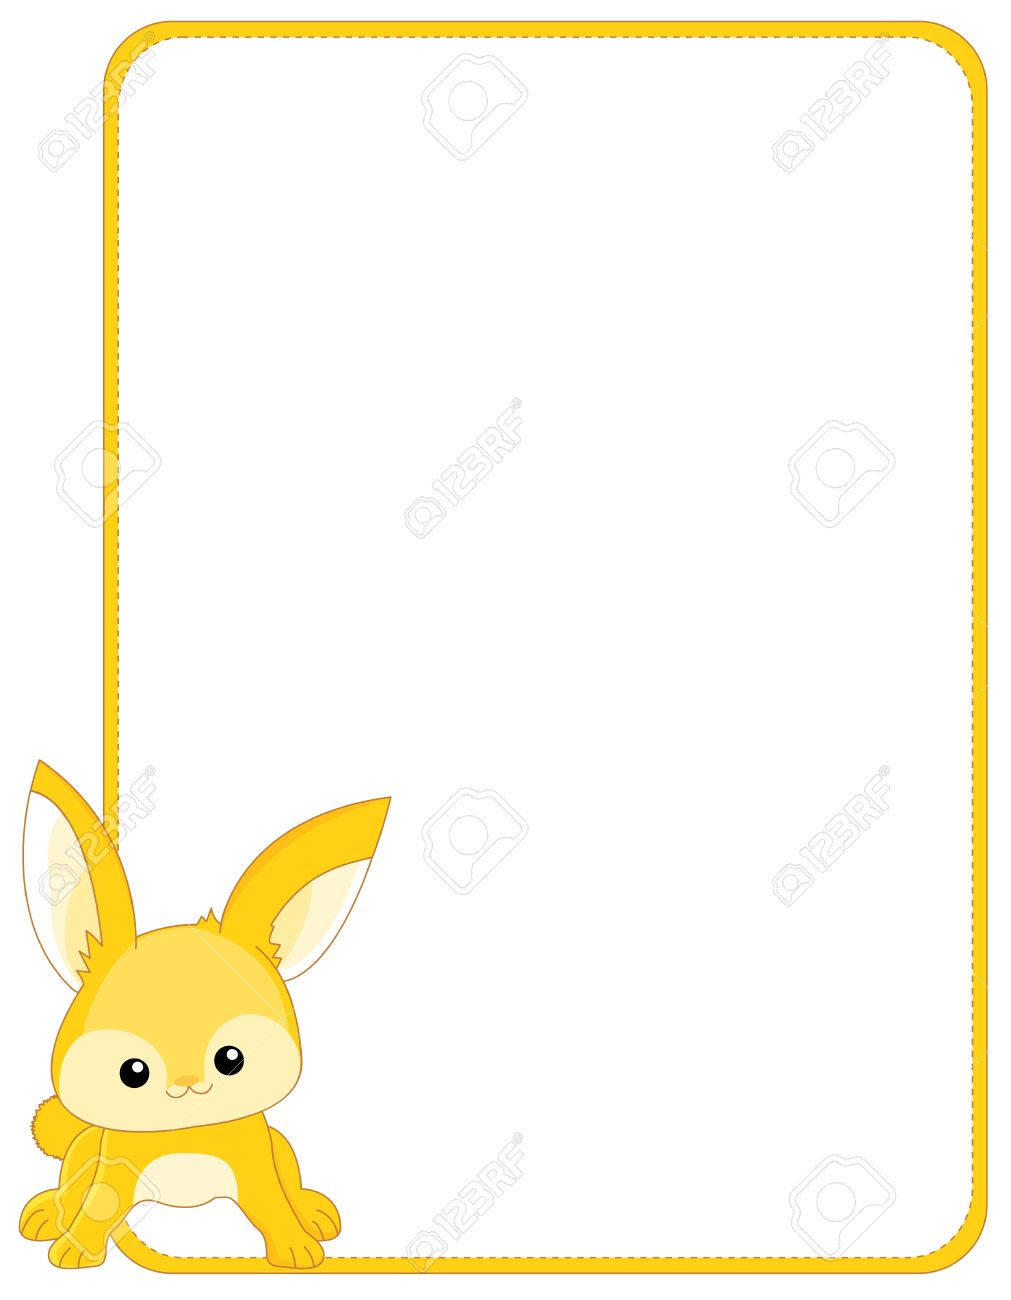 illustration of a cute little bunny rabbit border frame